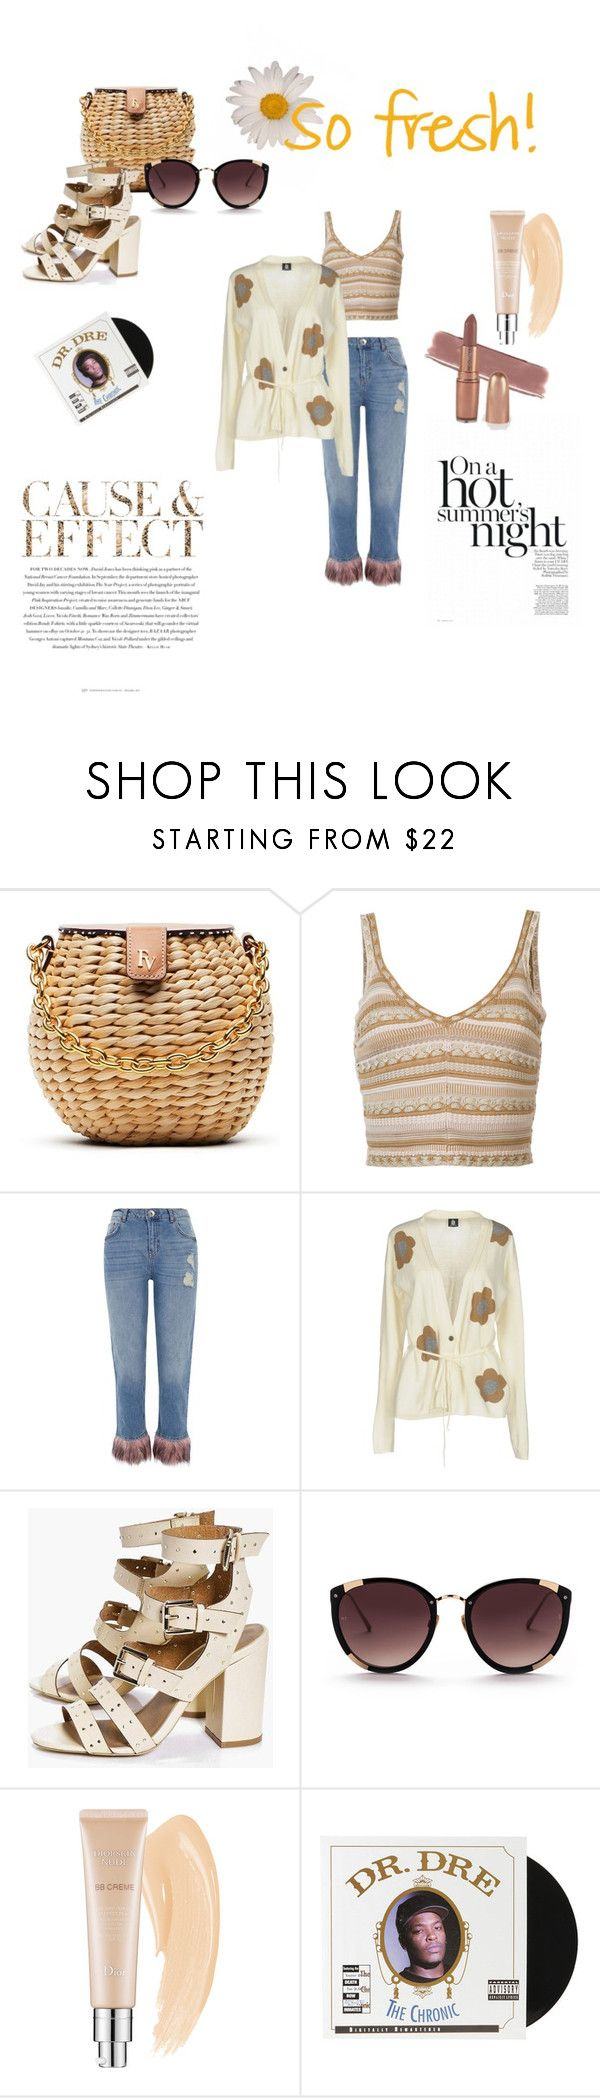 """""""🍋Fresh in hot☀️"""" by pinarhadutoglu ❤ liked on Polyvore featuring Frances Valentine, Alice + Olivia, Envi:, River Island, Marina Yachting, Boohoo, Christian Dior and Urban Outfitters"""